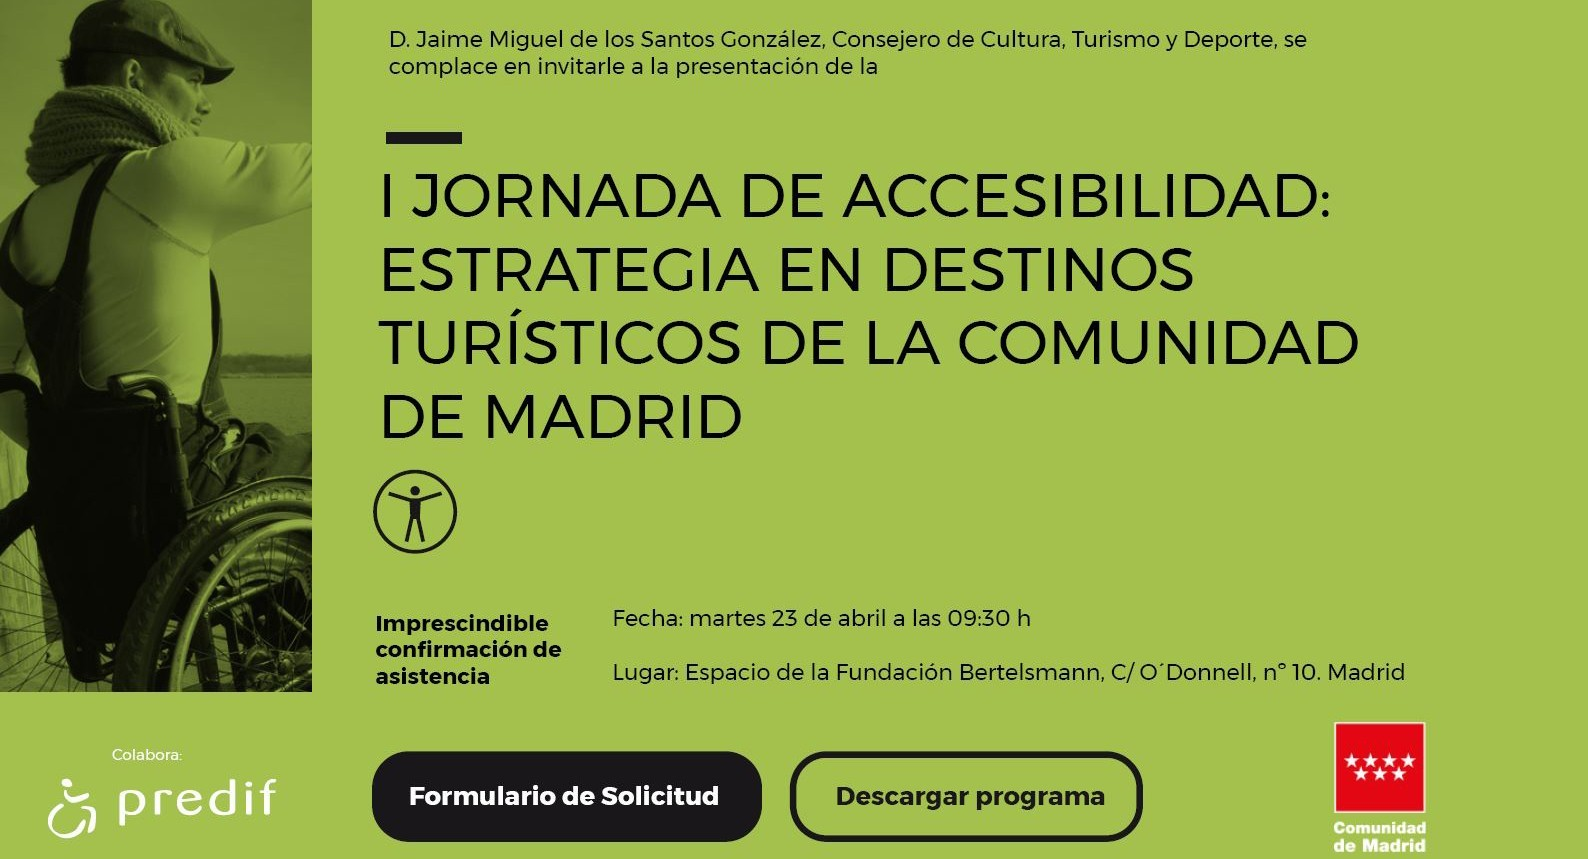 Cover photo of the event de I Jornada de Accesibilidad: estrategia en destinos turísticos de la Comunidad de Madrid